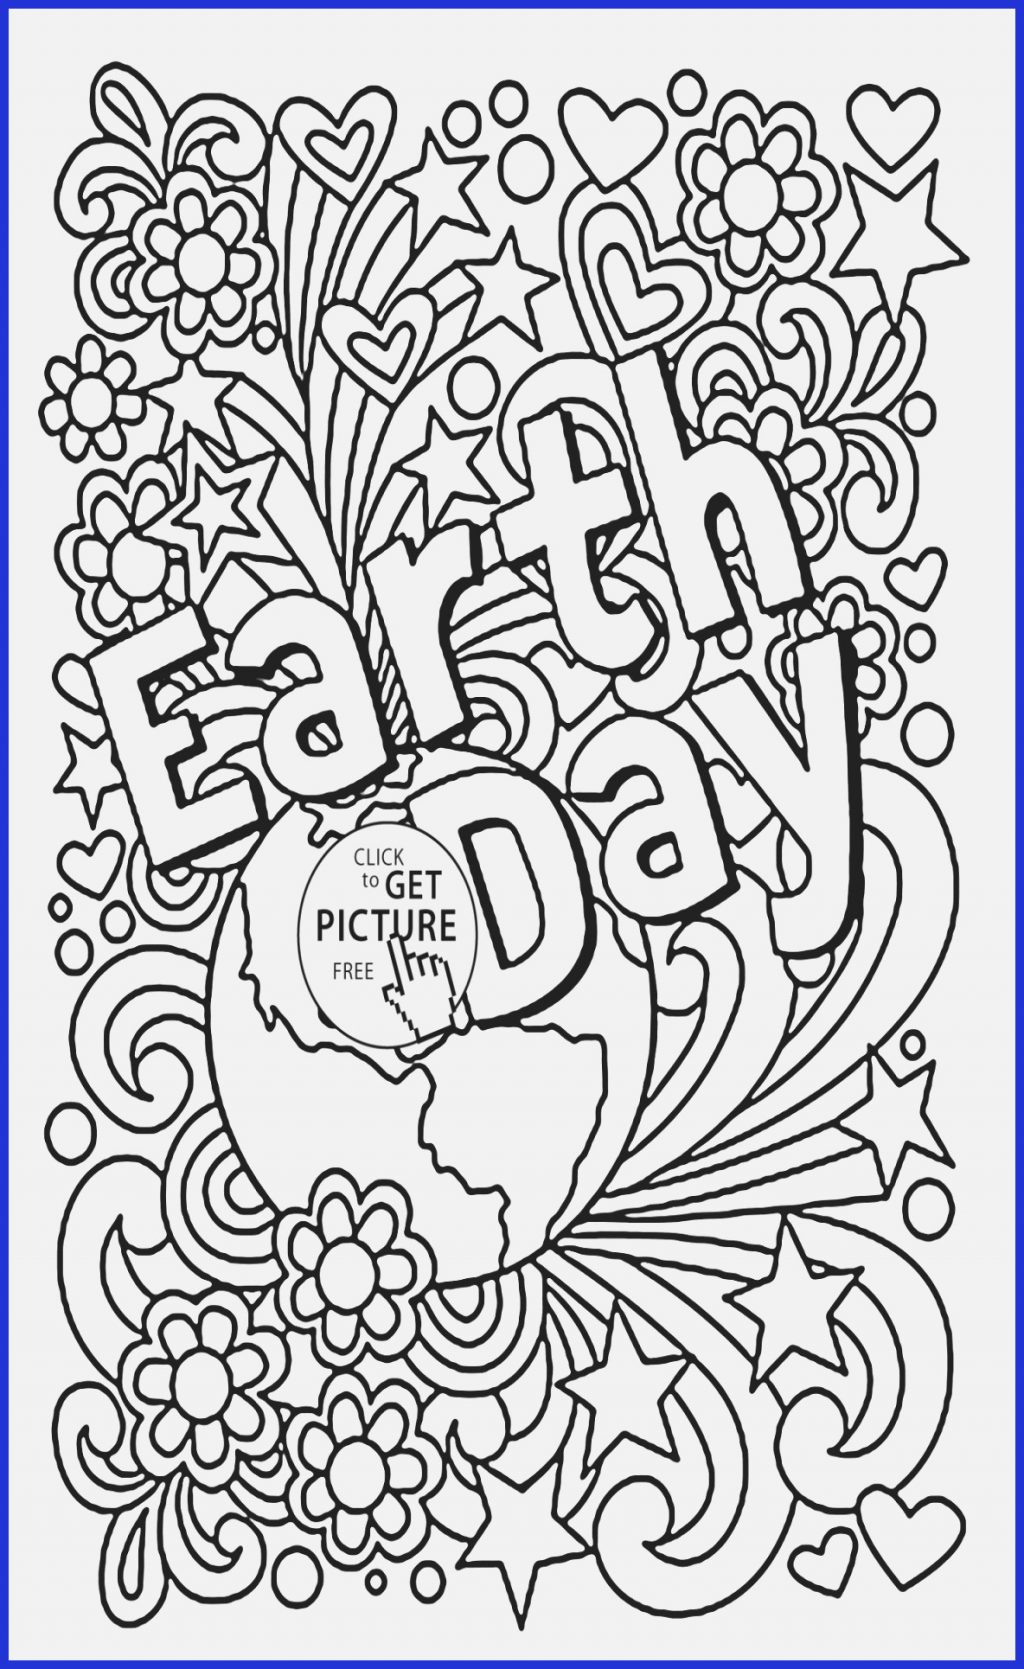 Earth Day Coloring Pages Coloring Ideas Freerintable Earth Day Coloringages And Activities